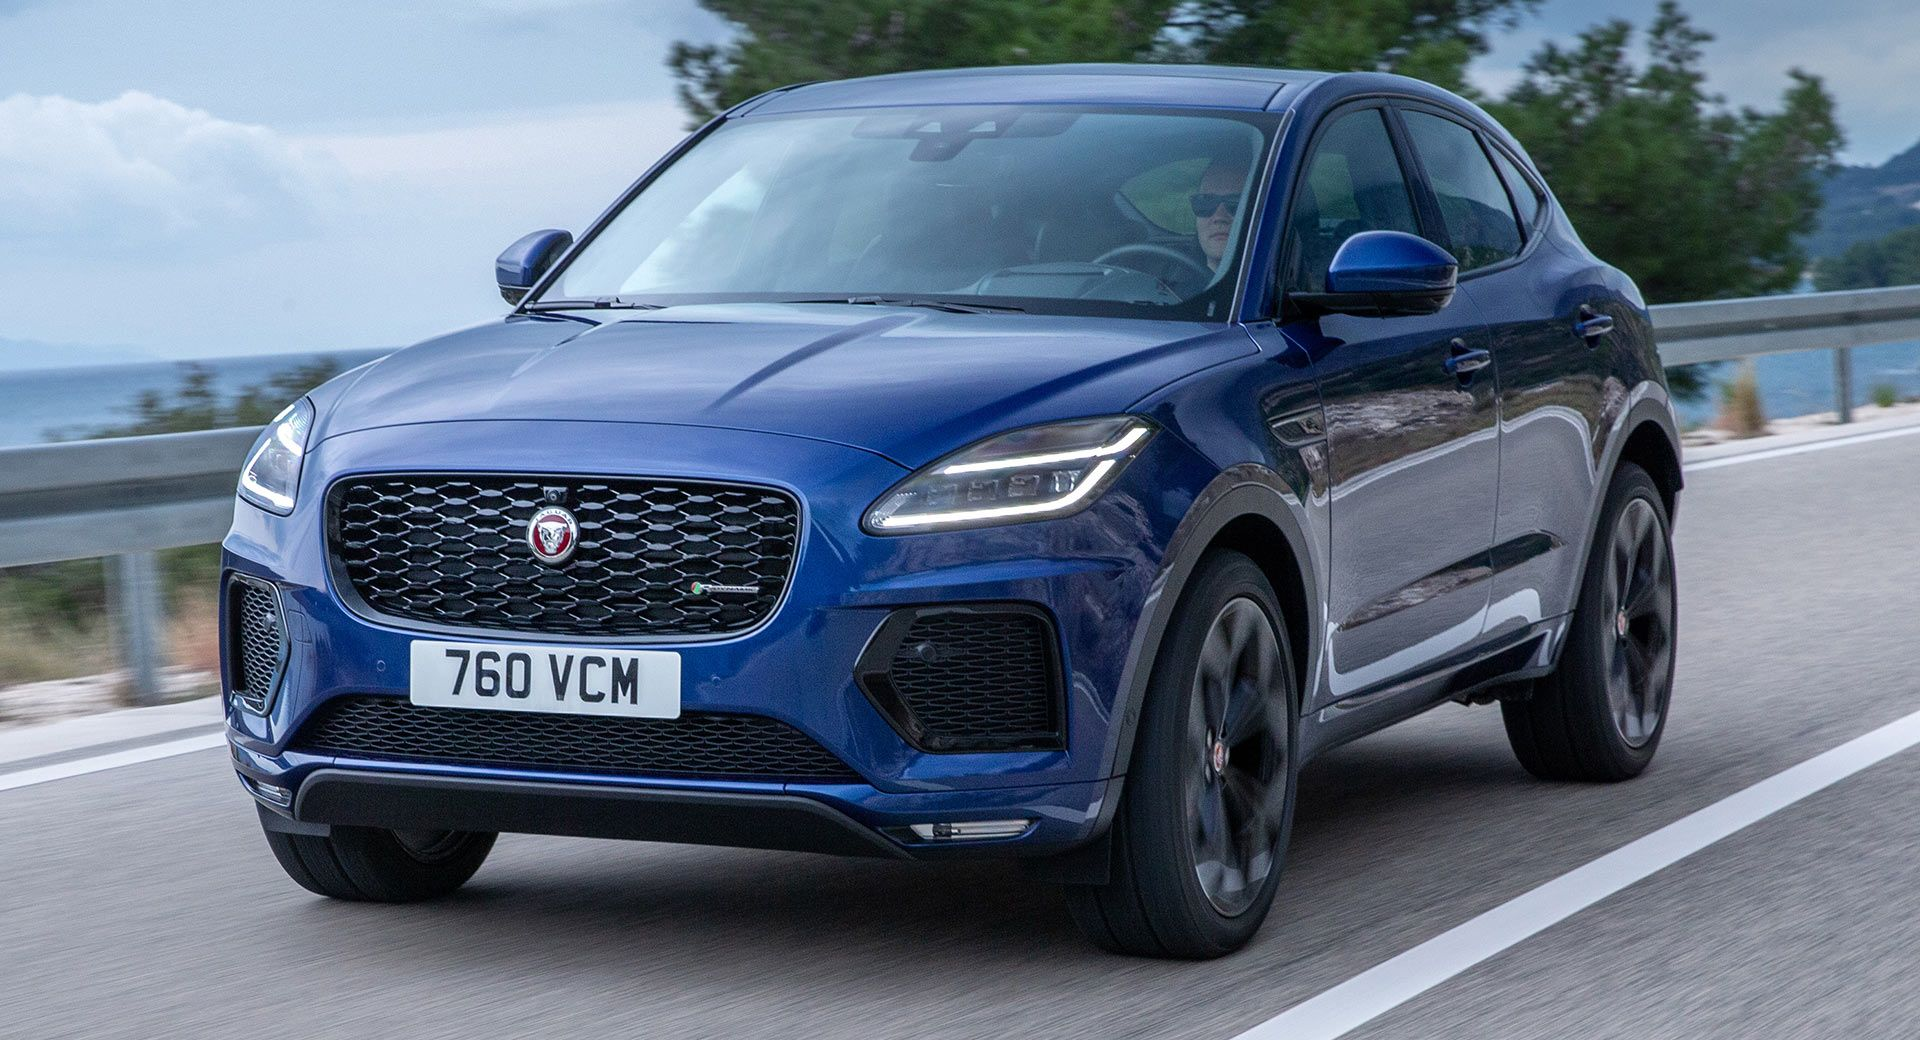 Facelifted 2021 Jaguar E Pace Lands With Tweaked Looks Carscoops Jaguar E Pace New Jaguar Jaguar